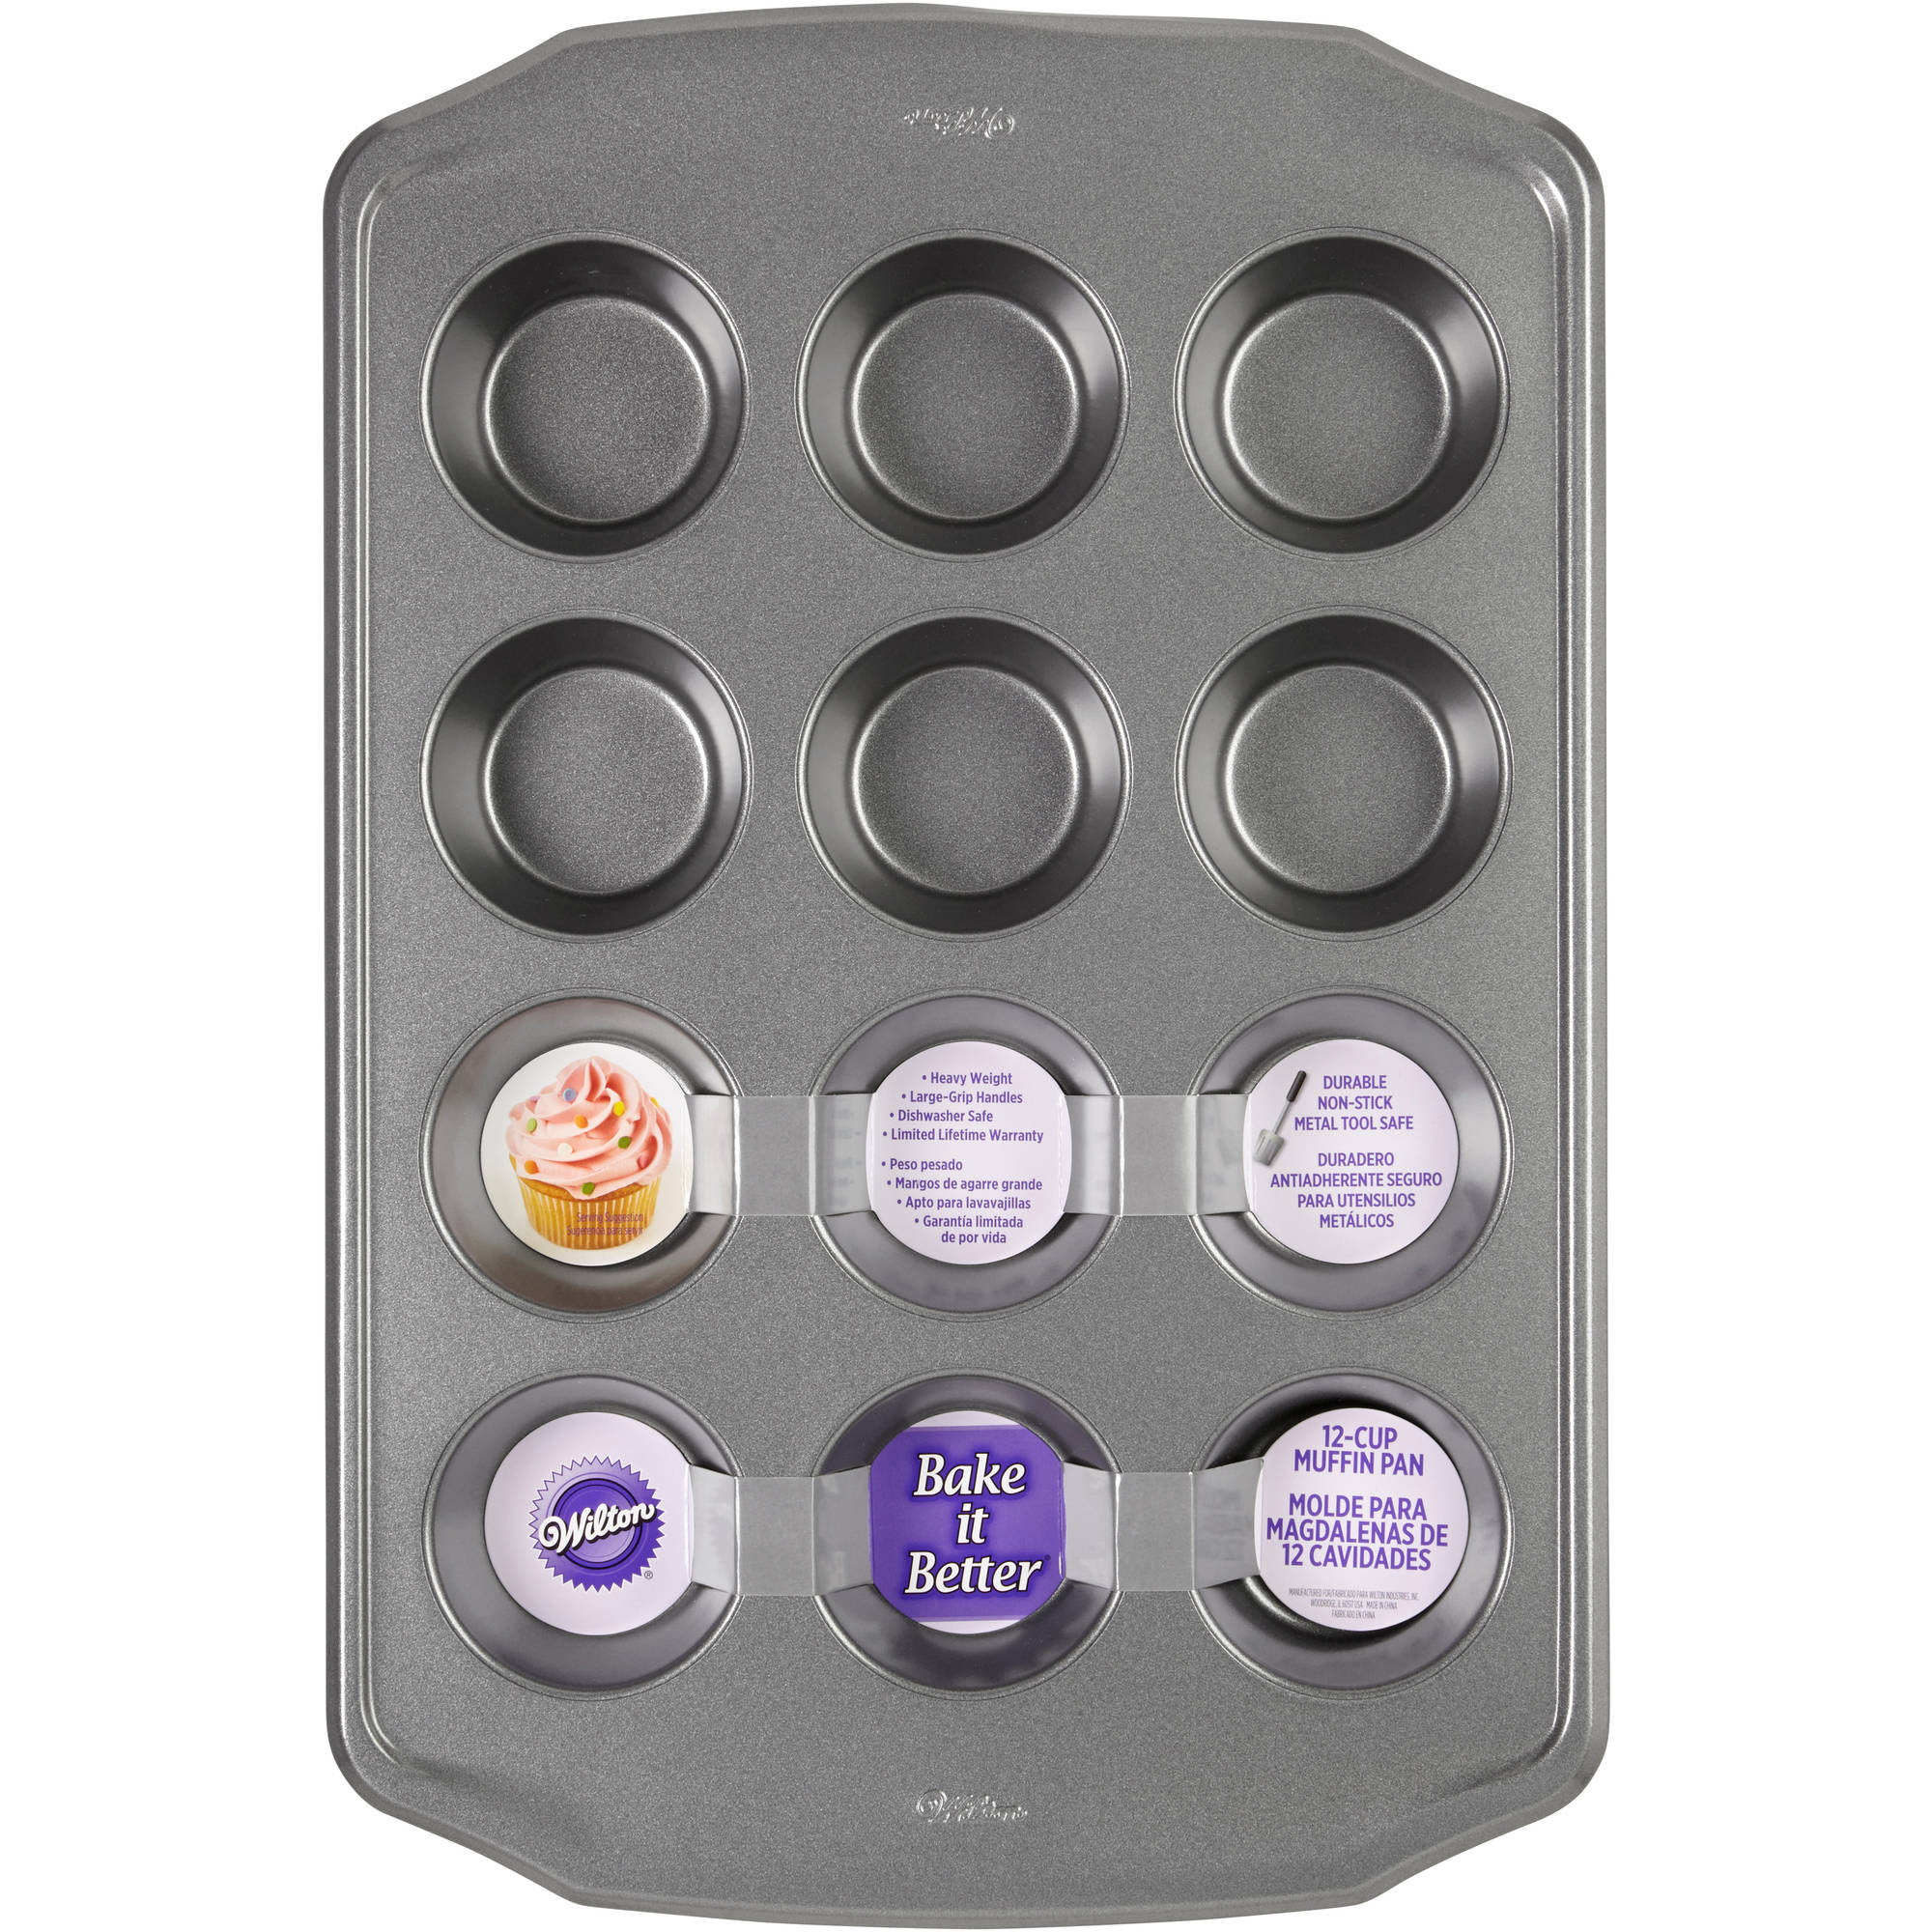 Wilton 12-Cavity Bake It Better Muffin Pan 2105-4960